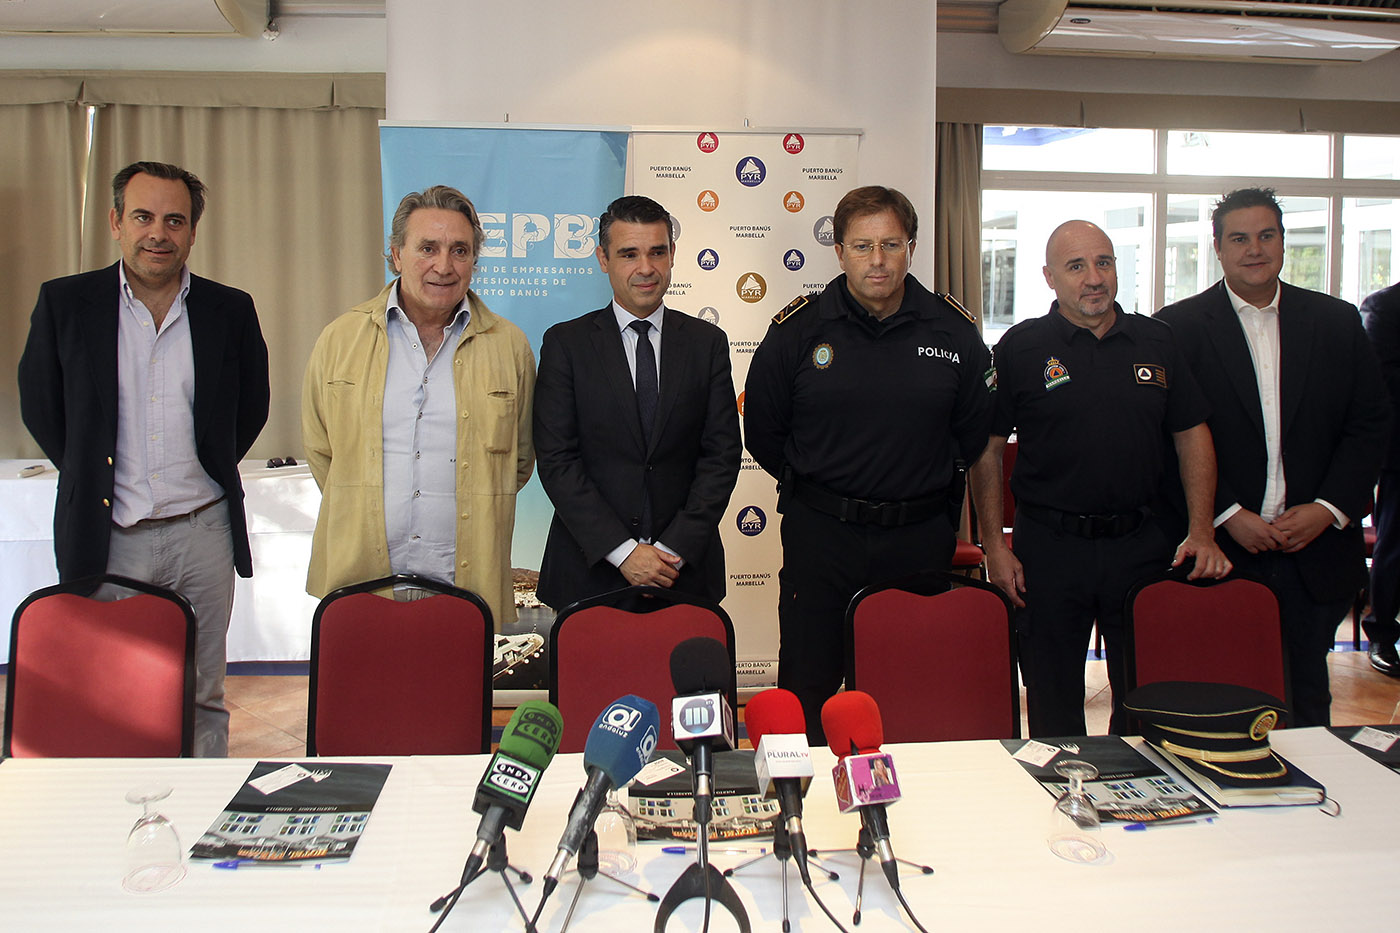 Marbella City Council and business people join forces to improve Puerto Banús